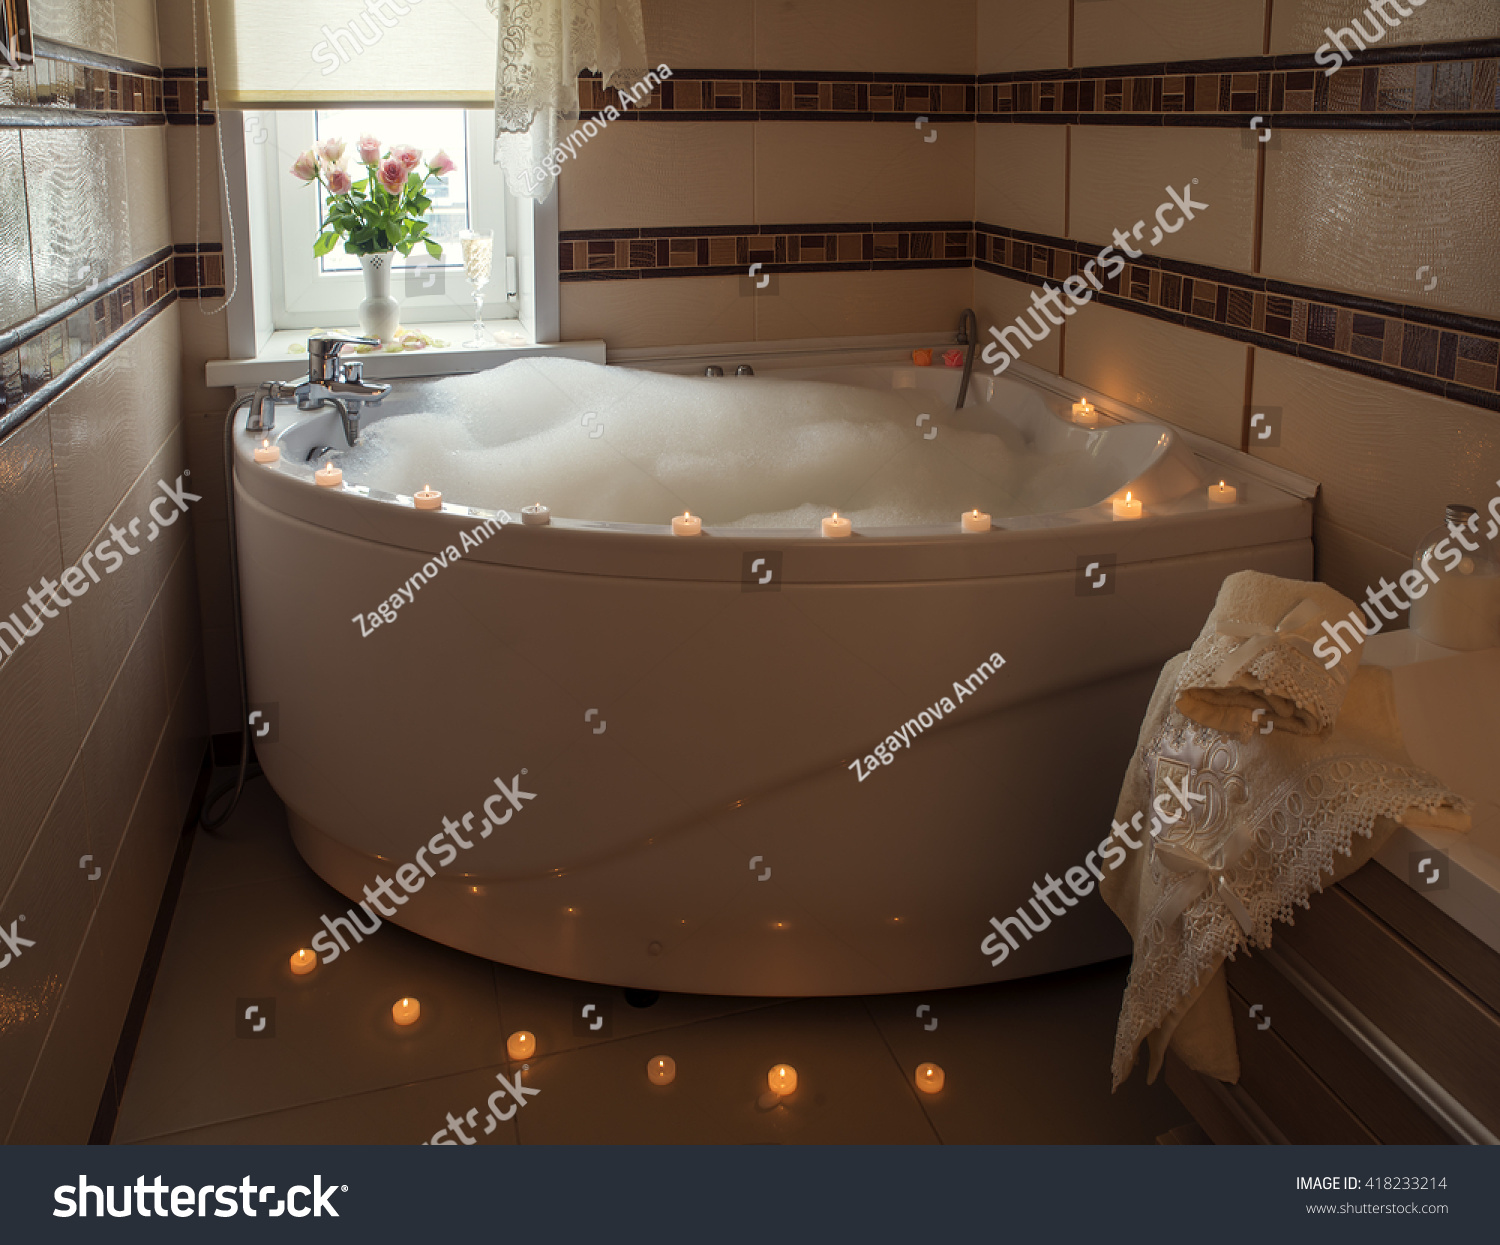 Luxury Jacuzzi Bubble Bath Candles Flowers Stock Photo (Royalty Free ...